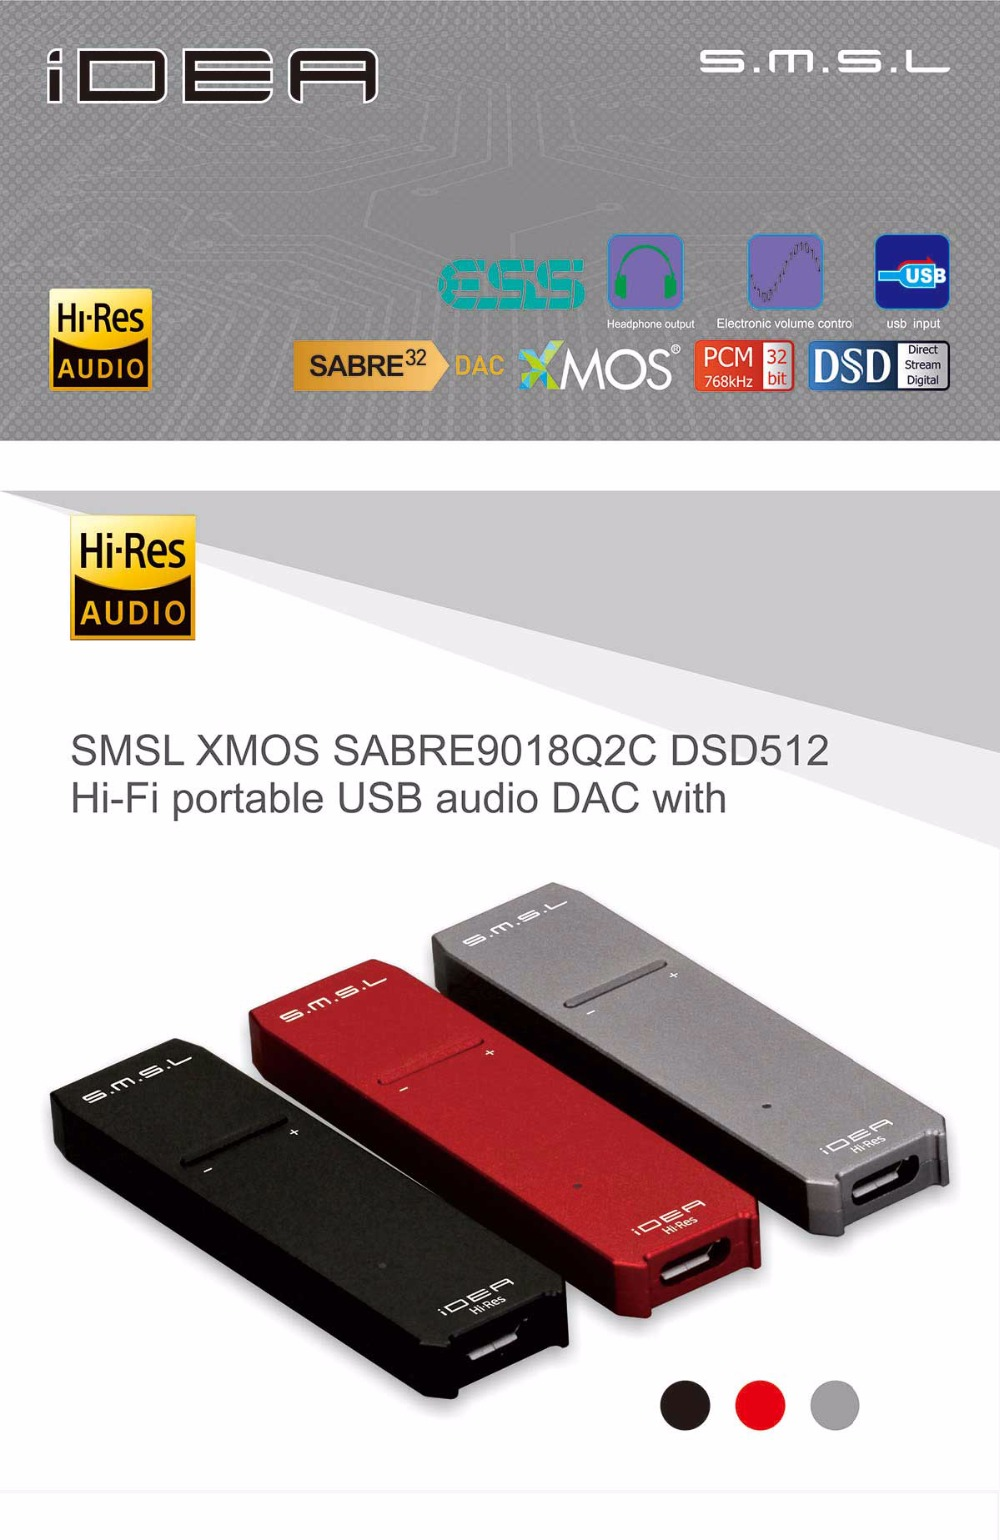 SMSL IDEA Portable Headphone Amplifier XMOS DAC DSD512 HIFI EXQUIS S.M.S.L. Nomade mini Decoder AMP USB s m s l smsl t1 dac tube headphone amplifier preamplifier hifi exquis dsd 512 384khz xmos usb decoder pre amp earphone amp